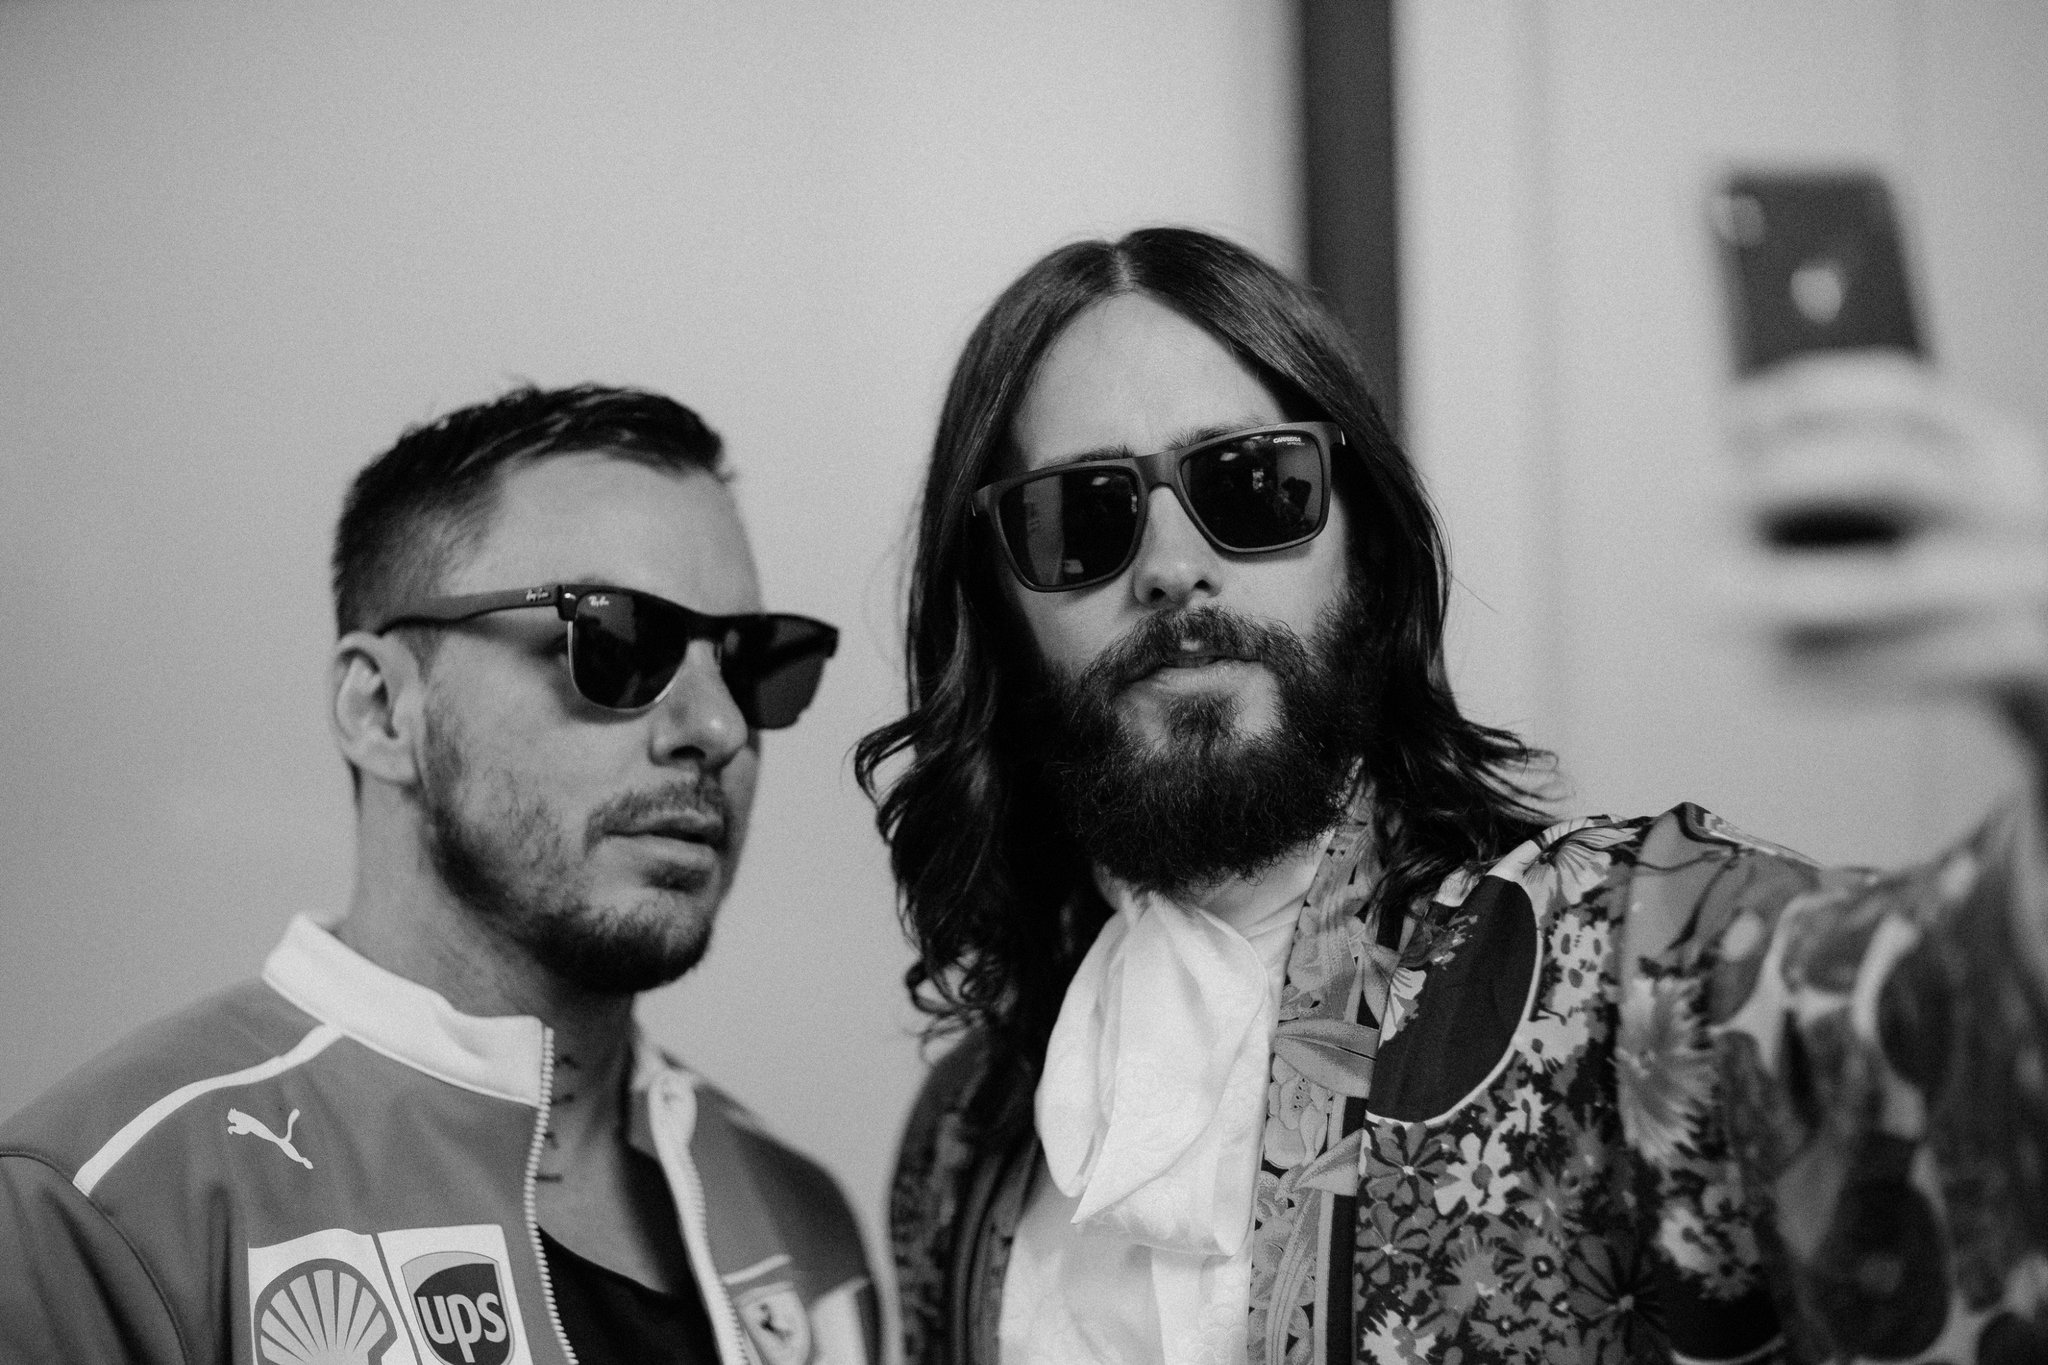 Happy #NationalSunglassesDay! Who is ready for the rest of the #MonolithTour? https://t.co/TsUhyUjfRL